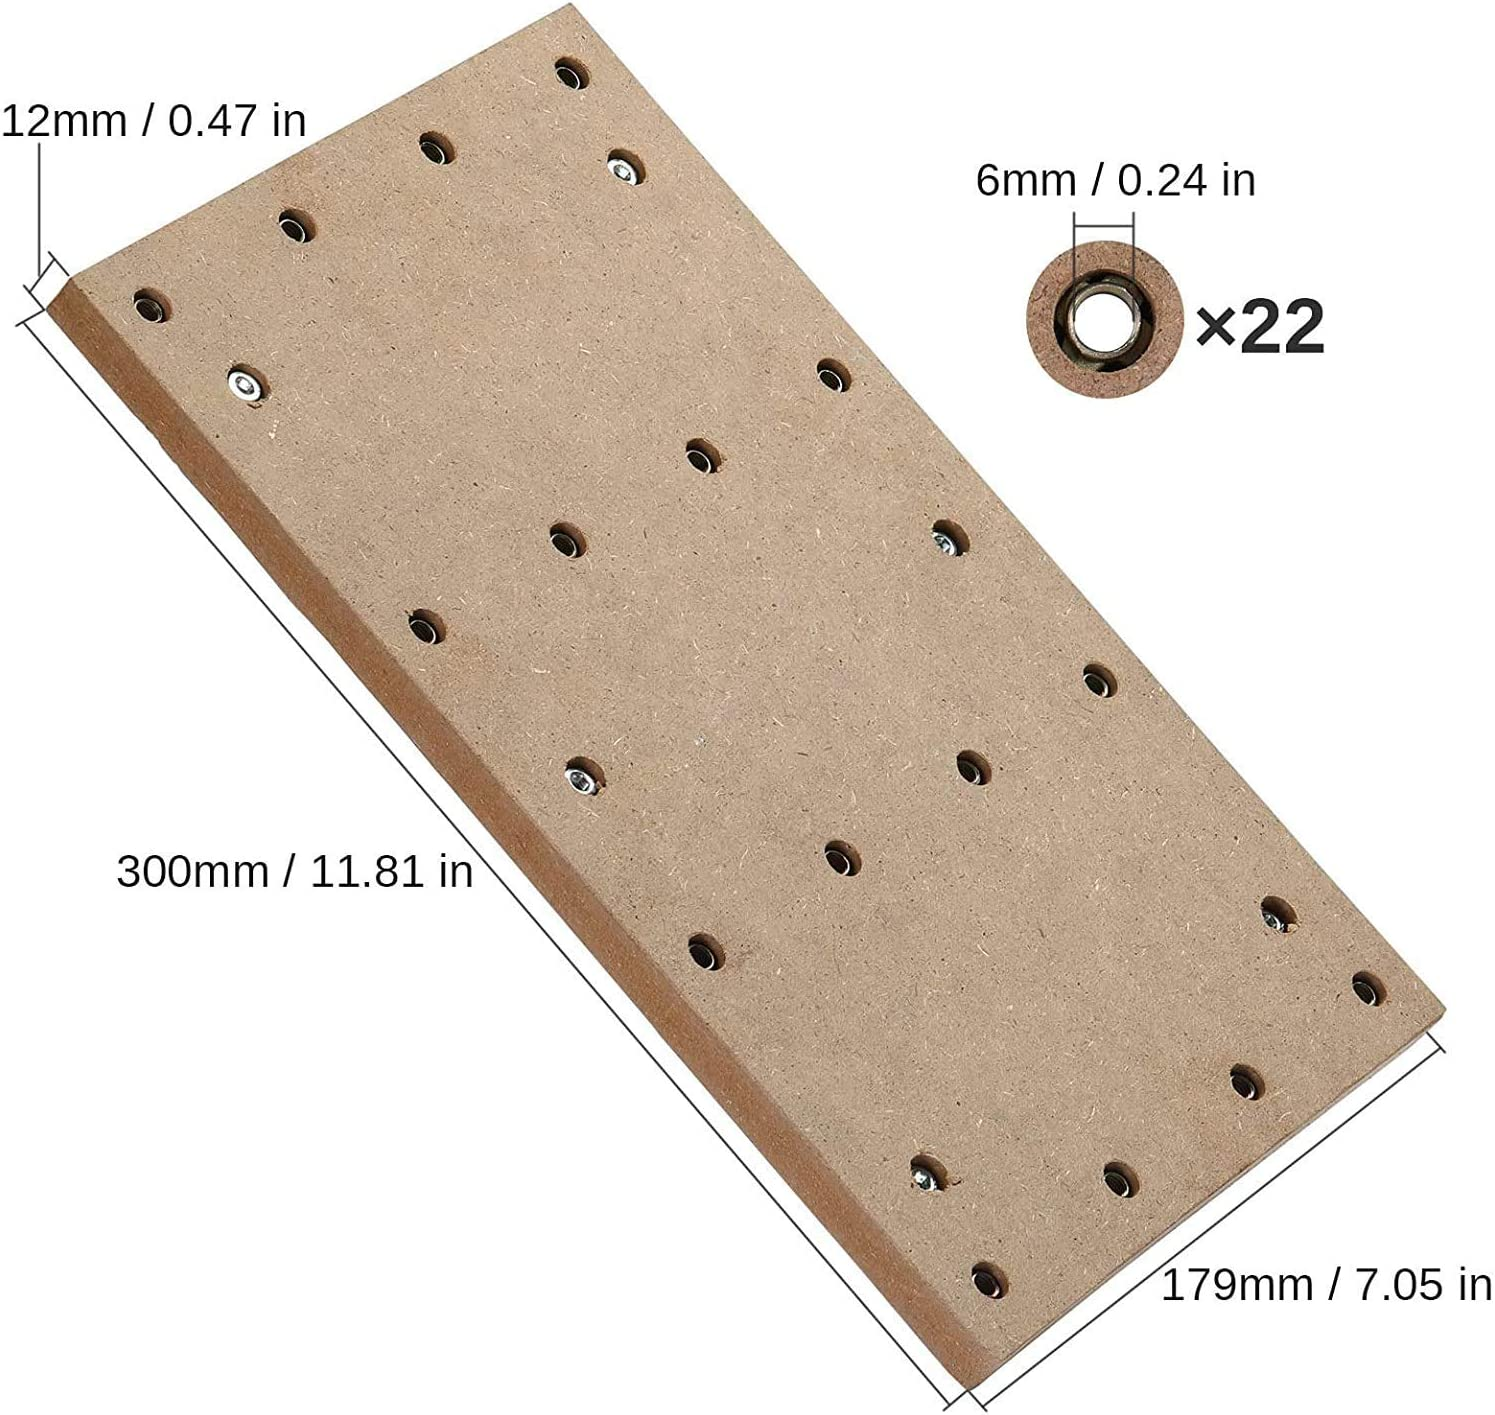 30 x 18 x 1.2cm 11-4//5x 7x 1//2 1//8 Shank Genmitsu CNC MDF Spoilboard for 3018 CNC Routers + 4PCS T-Track Mini Hold Down Clamp Kit 40PCS End Mills CNC Router Bits